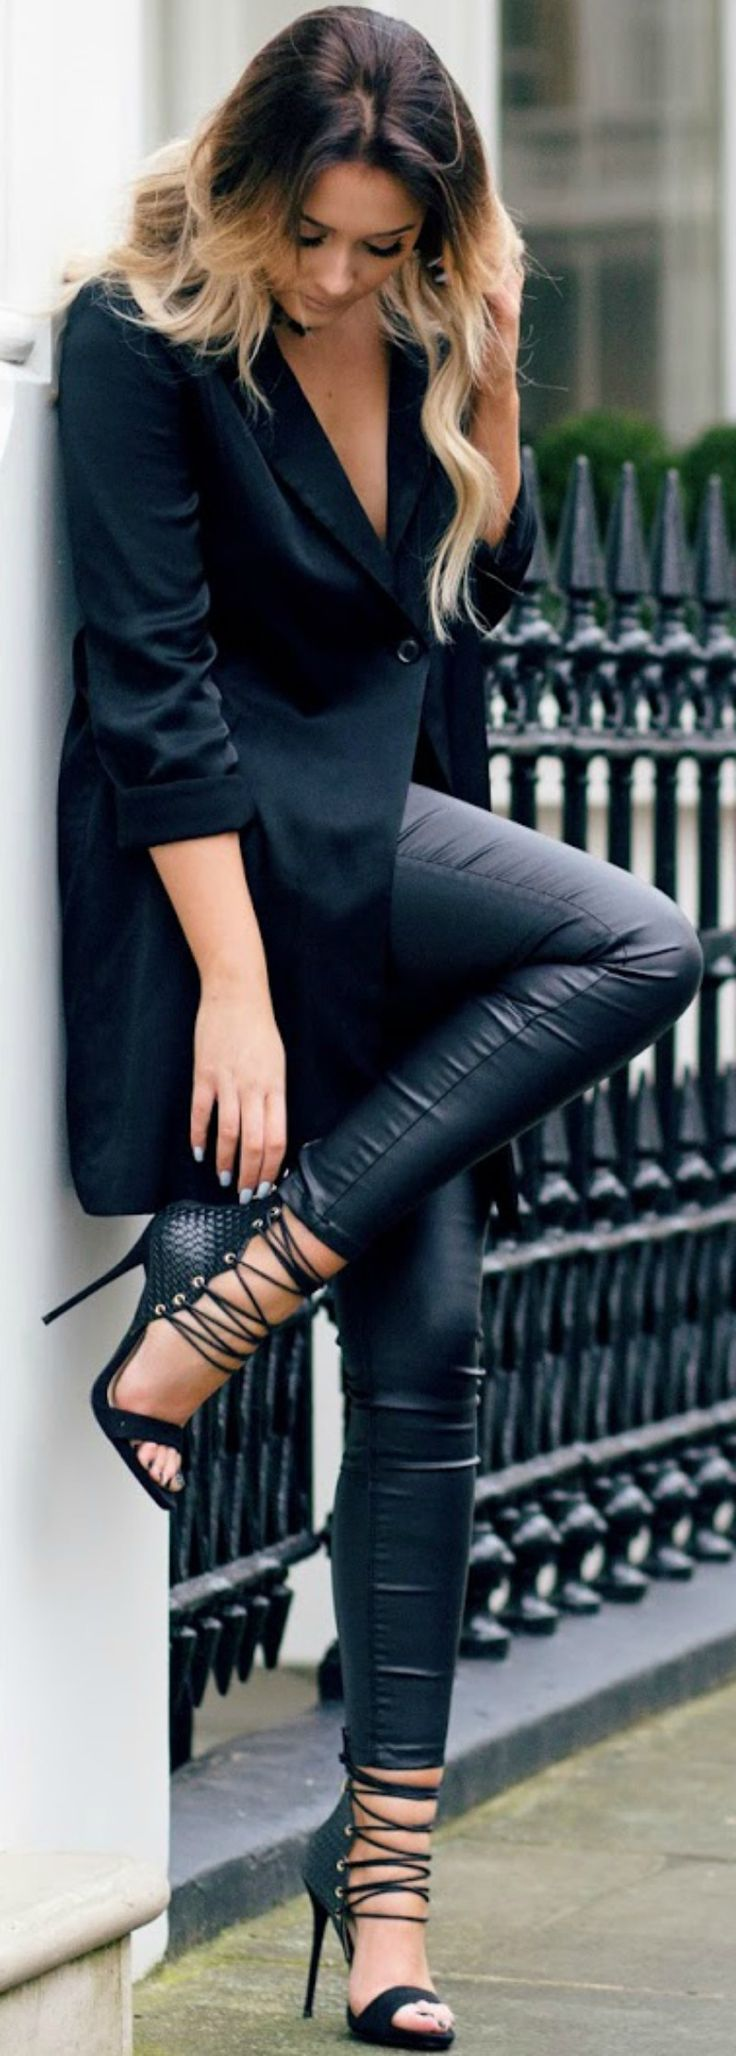 In leather leggings and an oversized blazer, Sarah Ashcroft is bringing a new kind of sex appeal to the all black trend! Punky stilettos such as this Simmi pair are the perfect finish to the look.   Blazer/Choker: H&M, Heels: Simmi, Trousers: Missguided